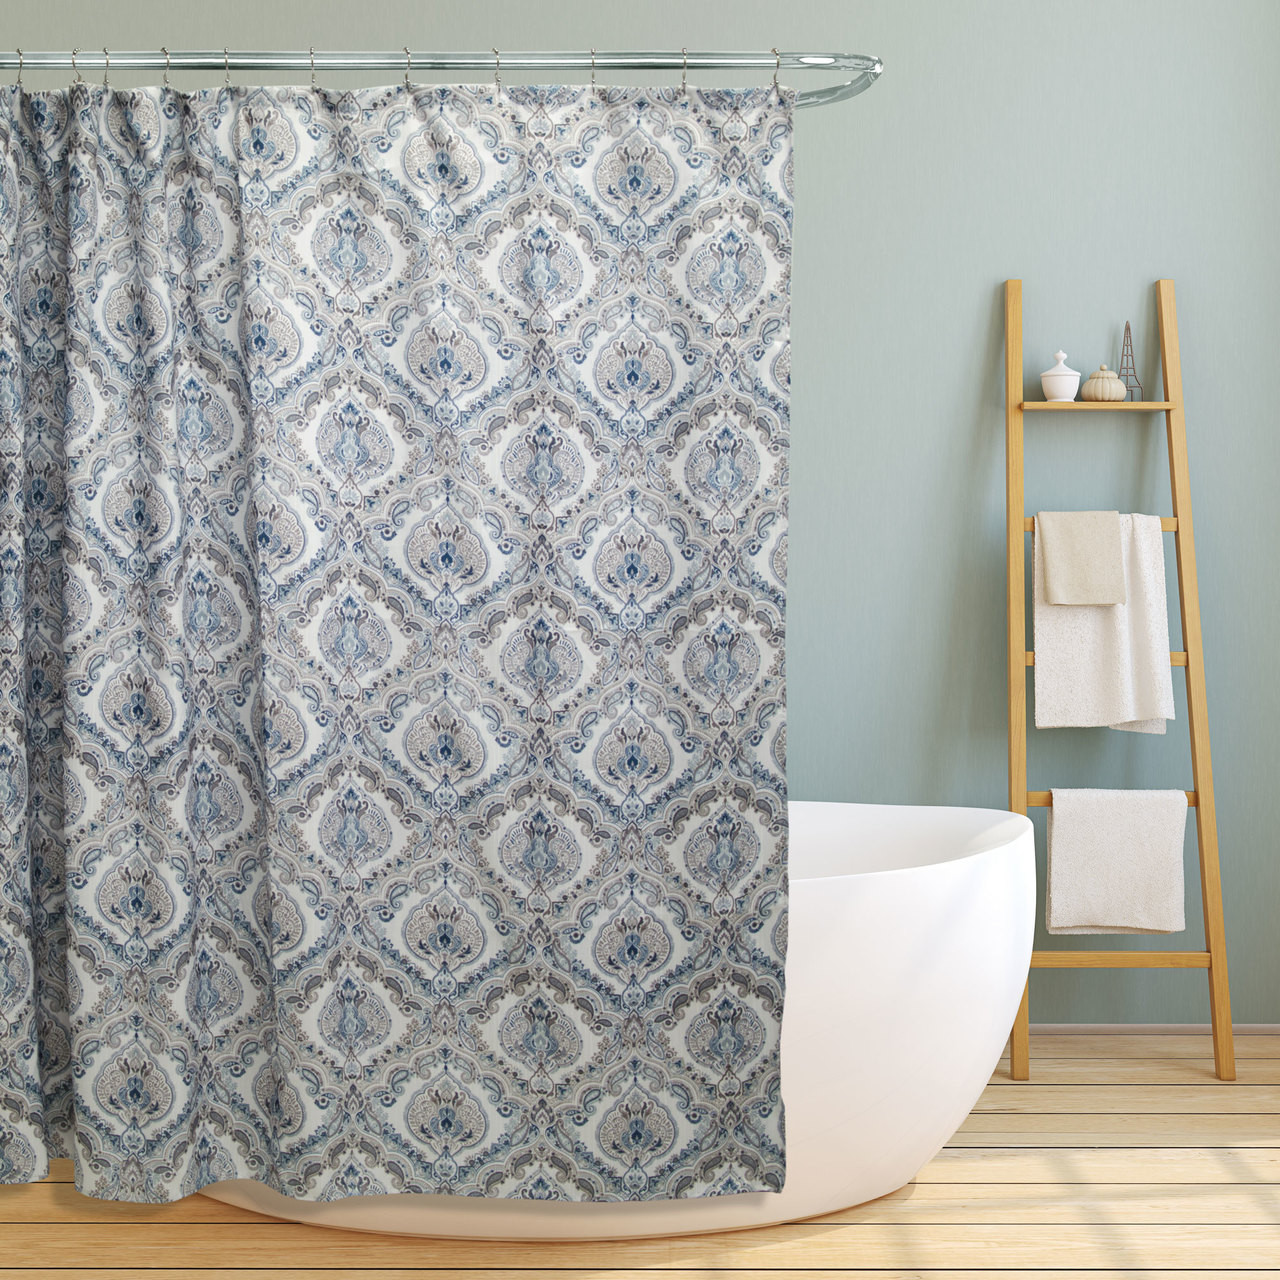 en nav showercurtains on bath bloss at home in linen chest web blossom shower products fabric curtain curtains moda